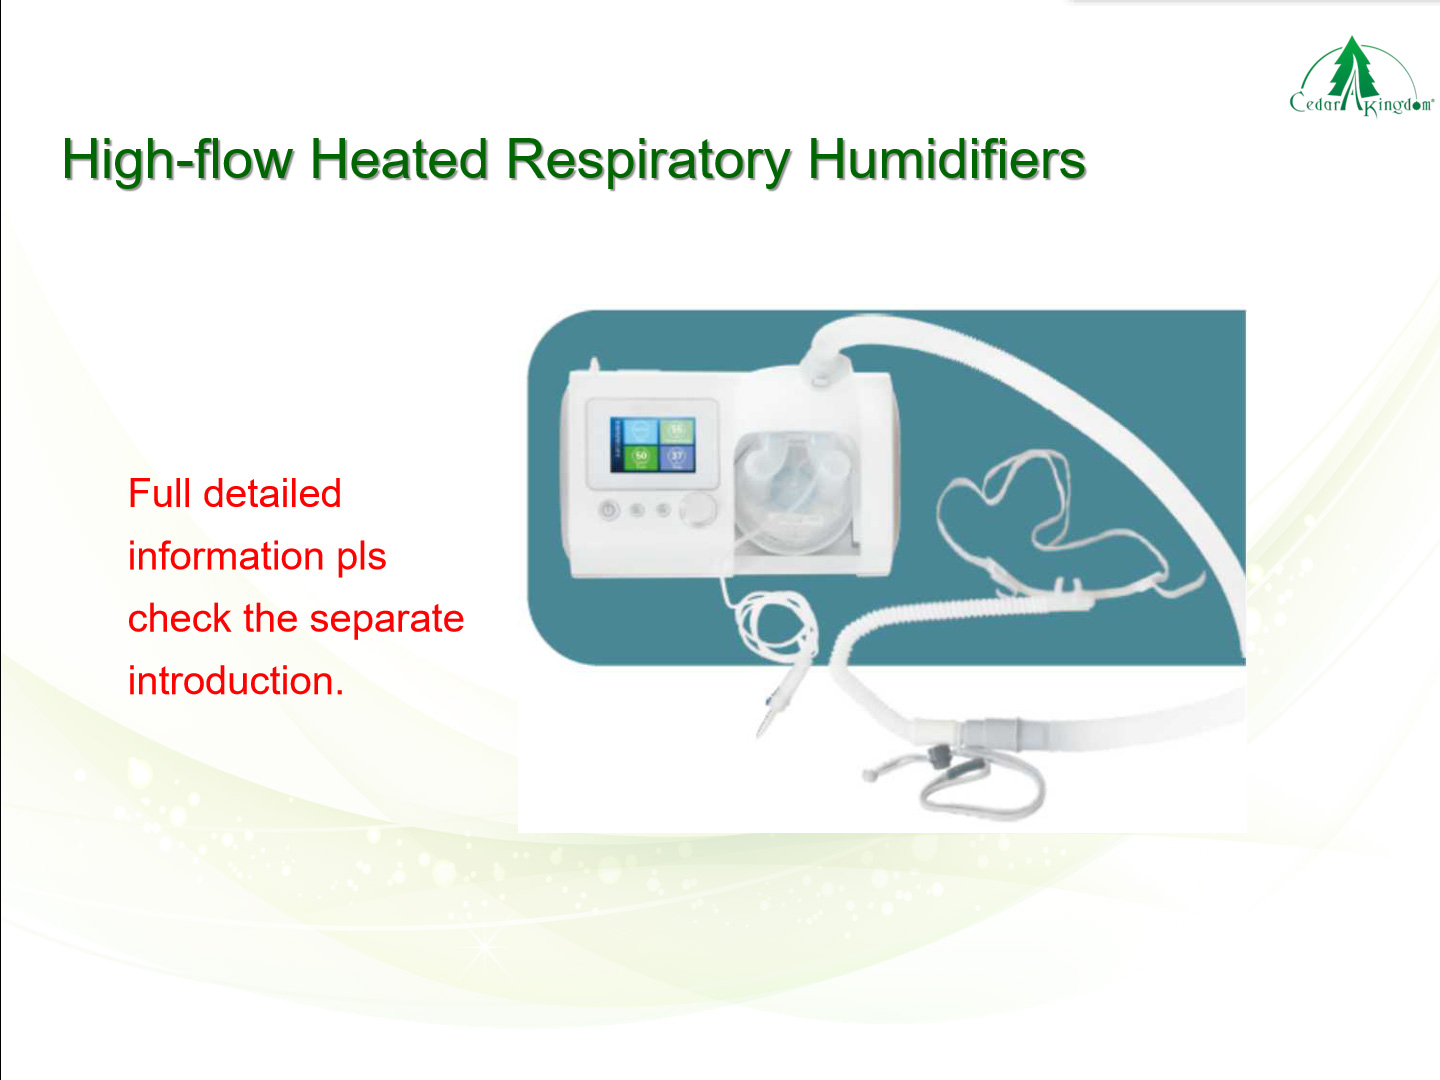 High-flow-Heated-Respiratory-Humidifiers